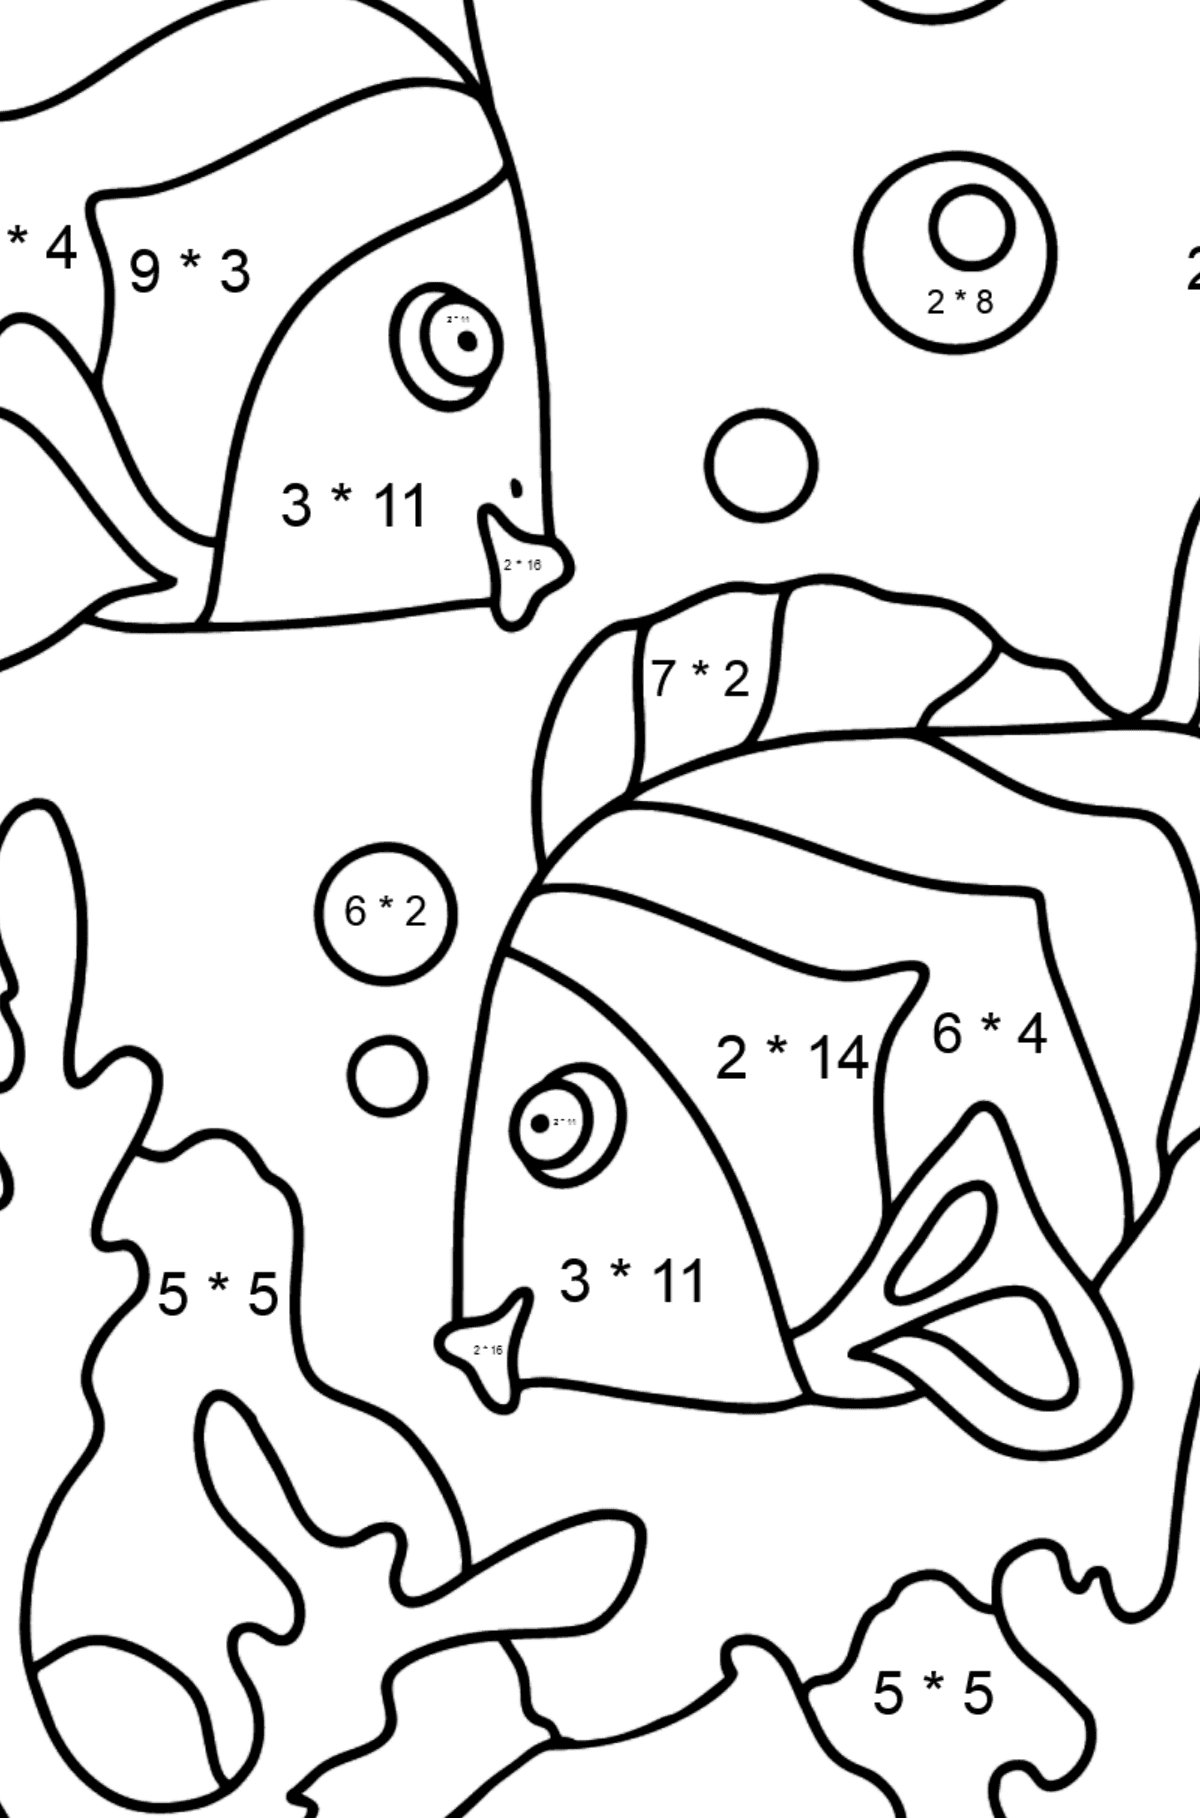 Coloring Page - Fish are Swimming Together - Math Coloring - Multiplication for Kids